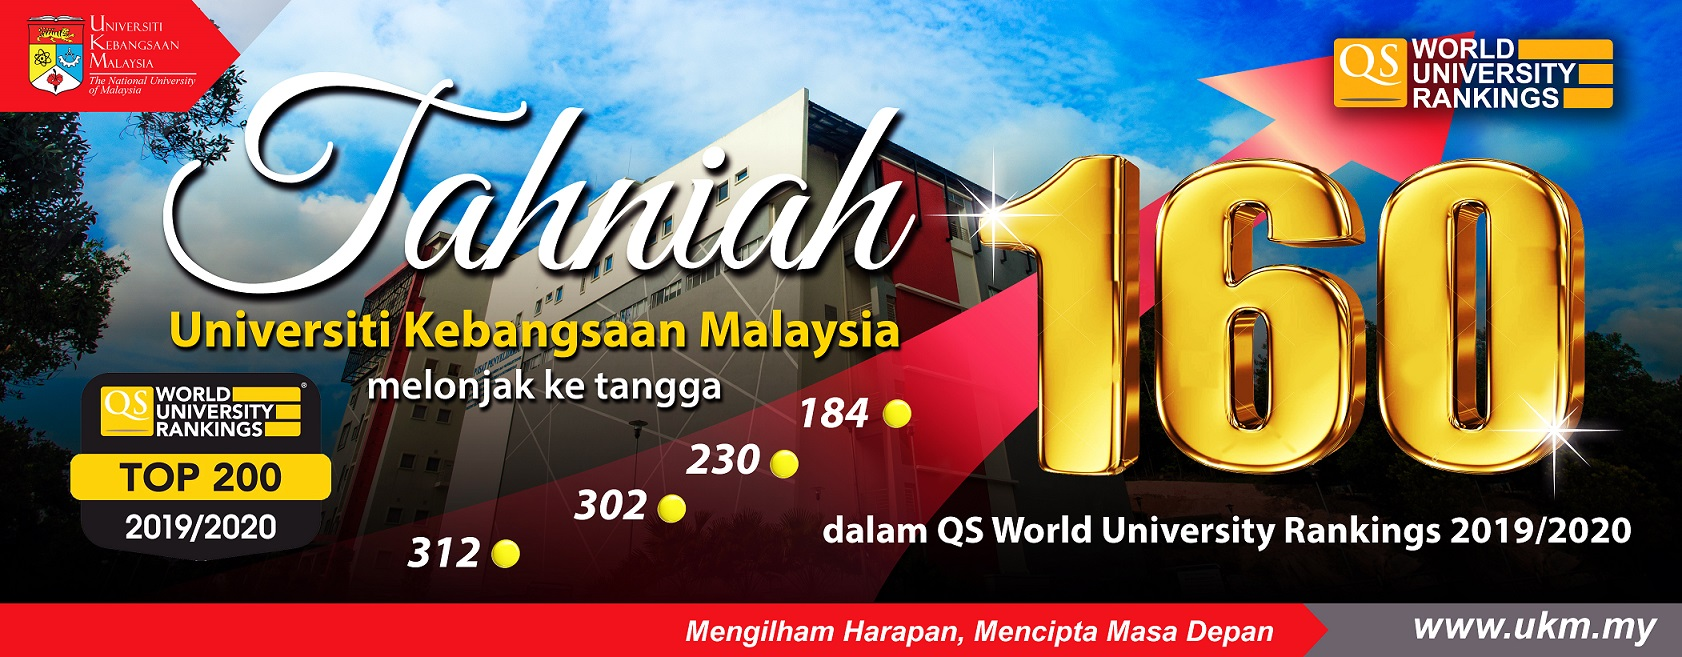 20190703 UKM 160 QS World University Rankings 2019/2020